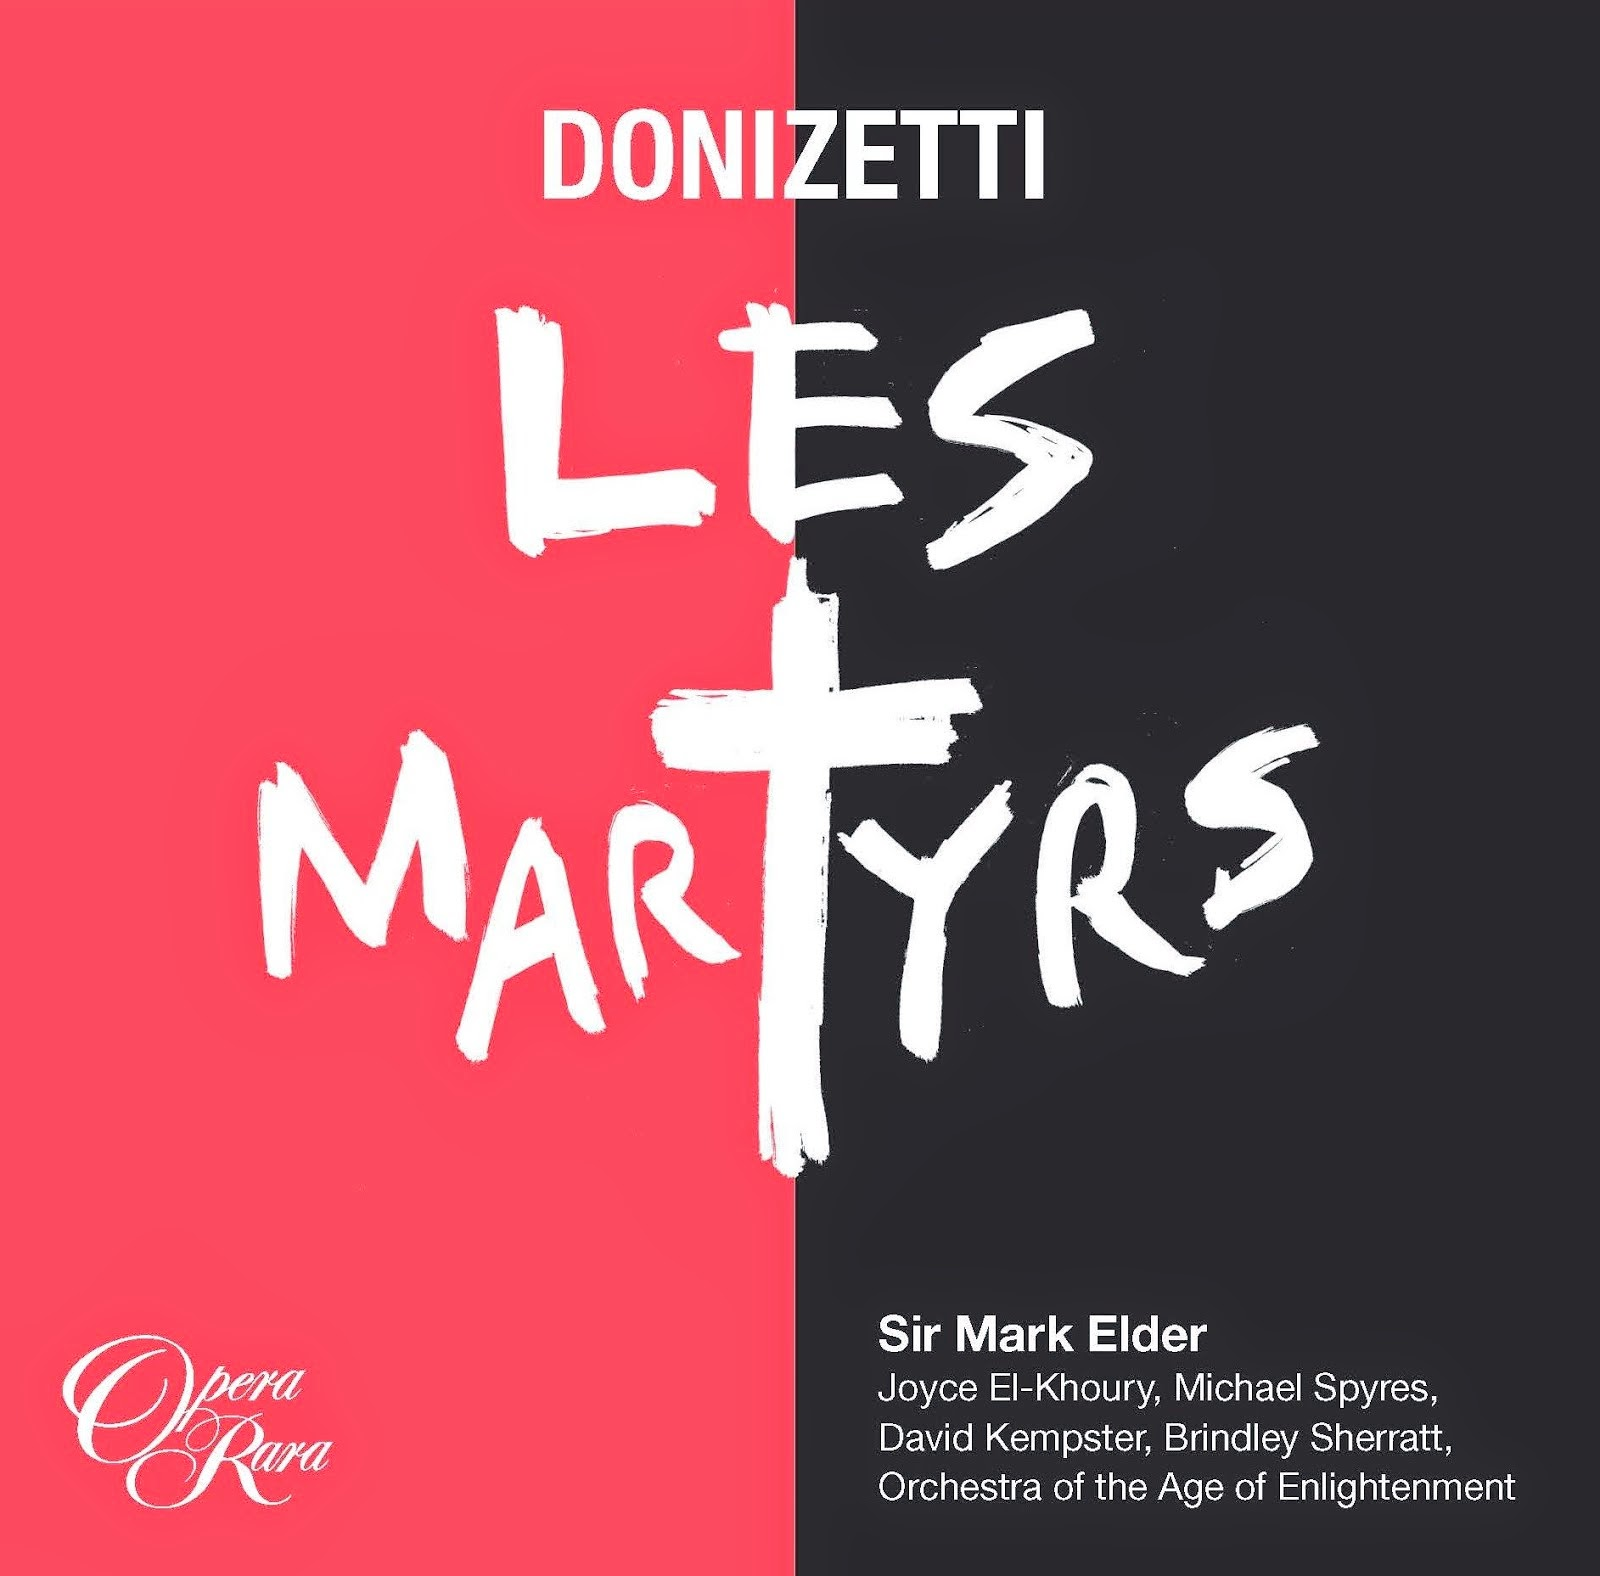 Donizetti en français: Opera Rara's studio recording of LES MARTYRS available now!